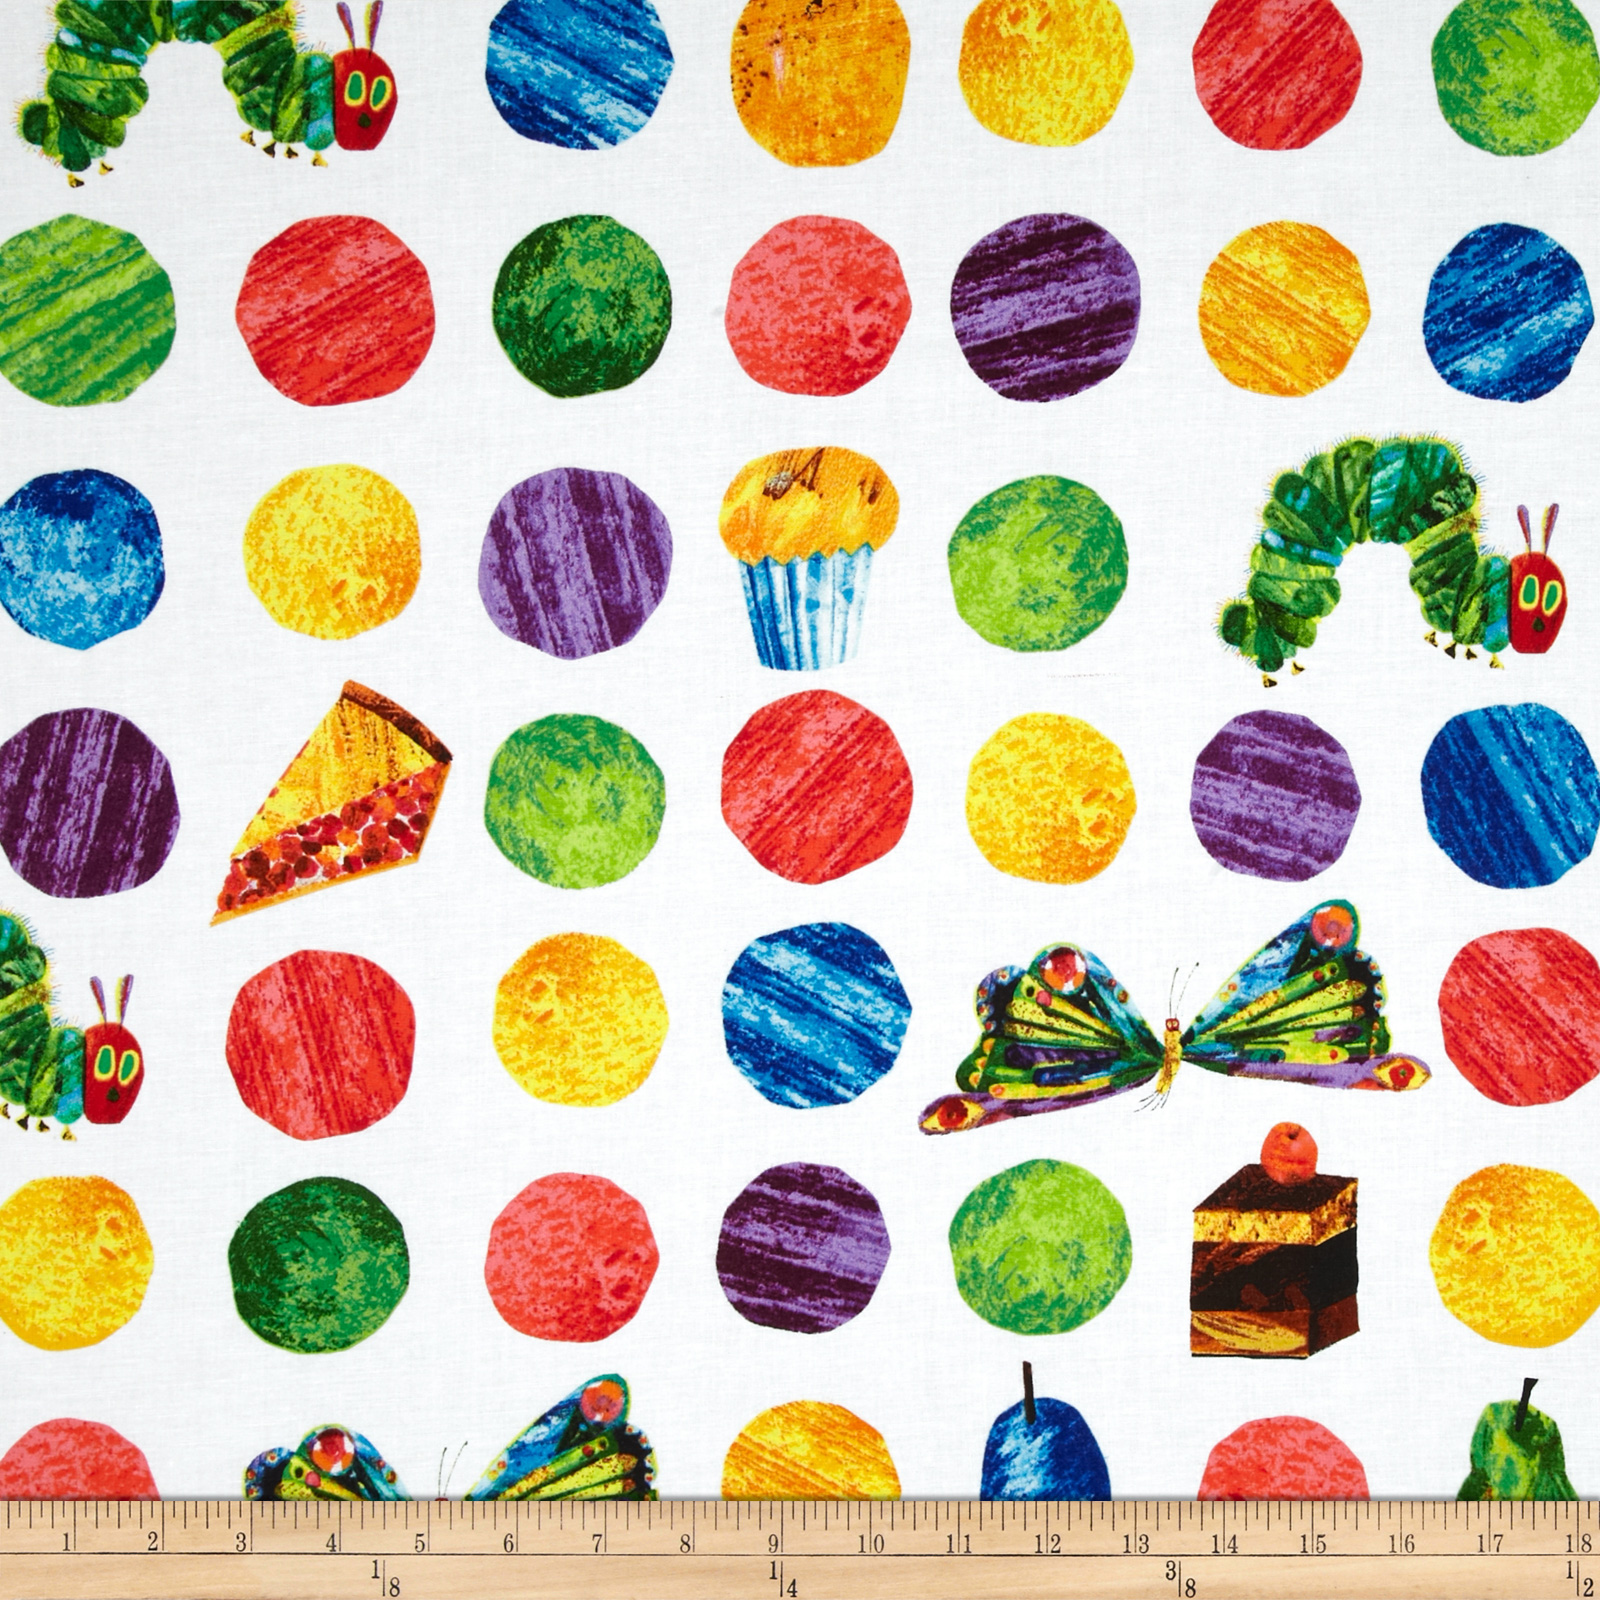 The Very Hungry Caterpillar Flannel   Discount Designer Fabric 1600x1600